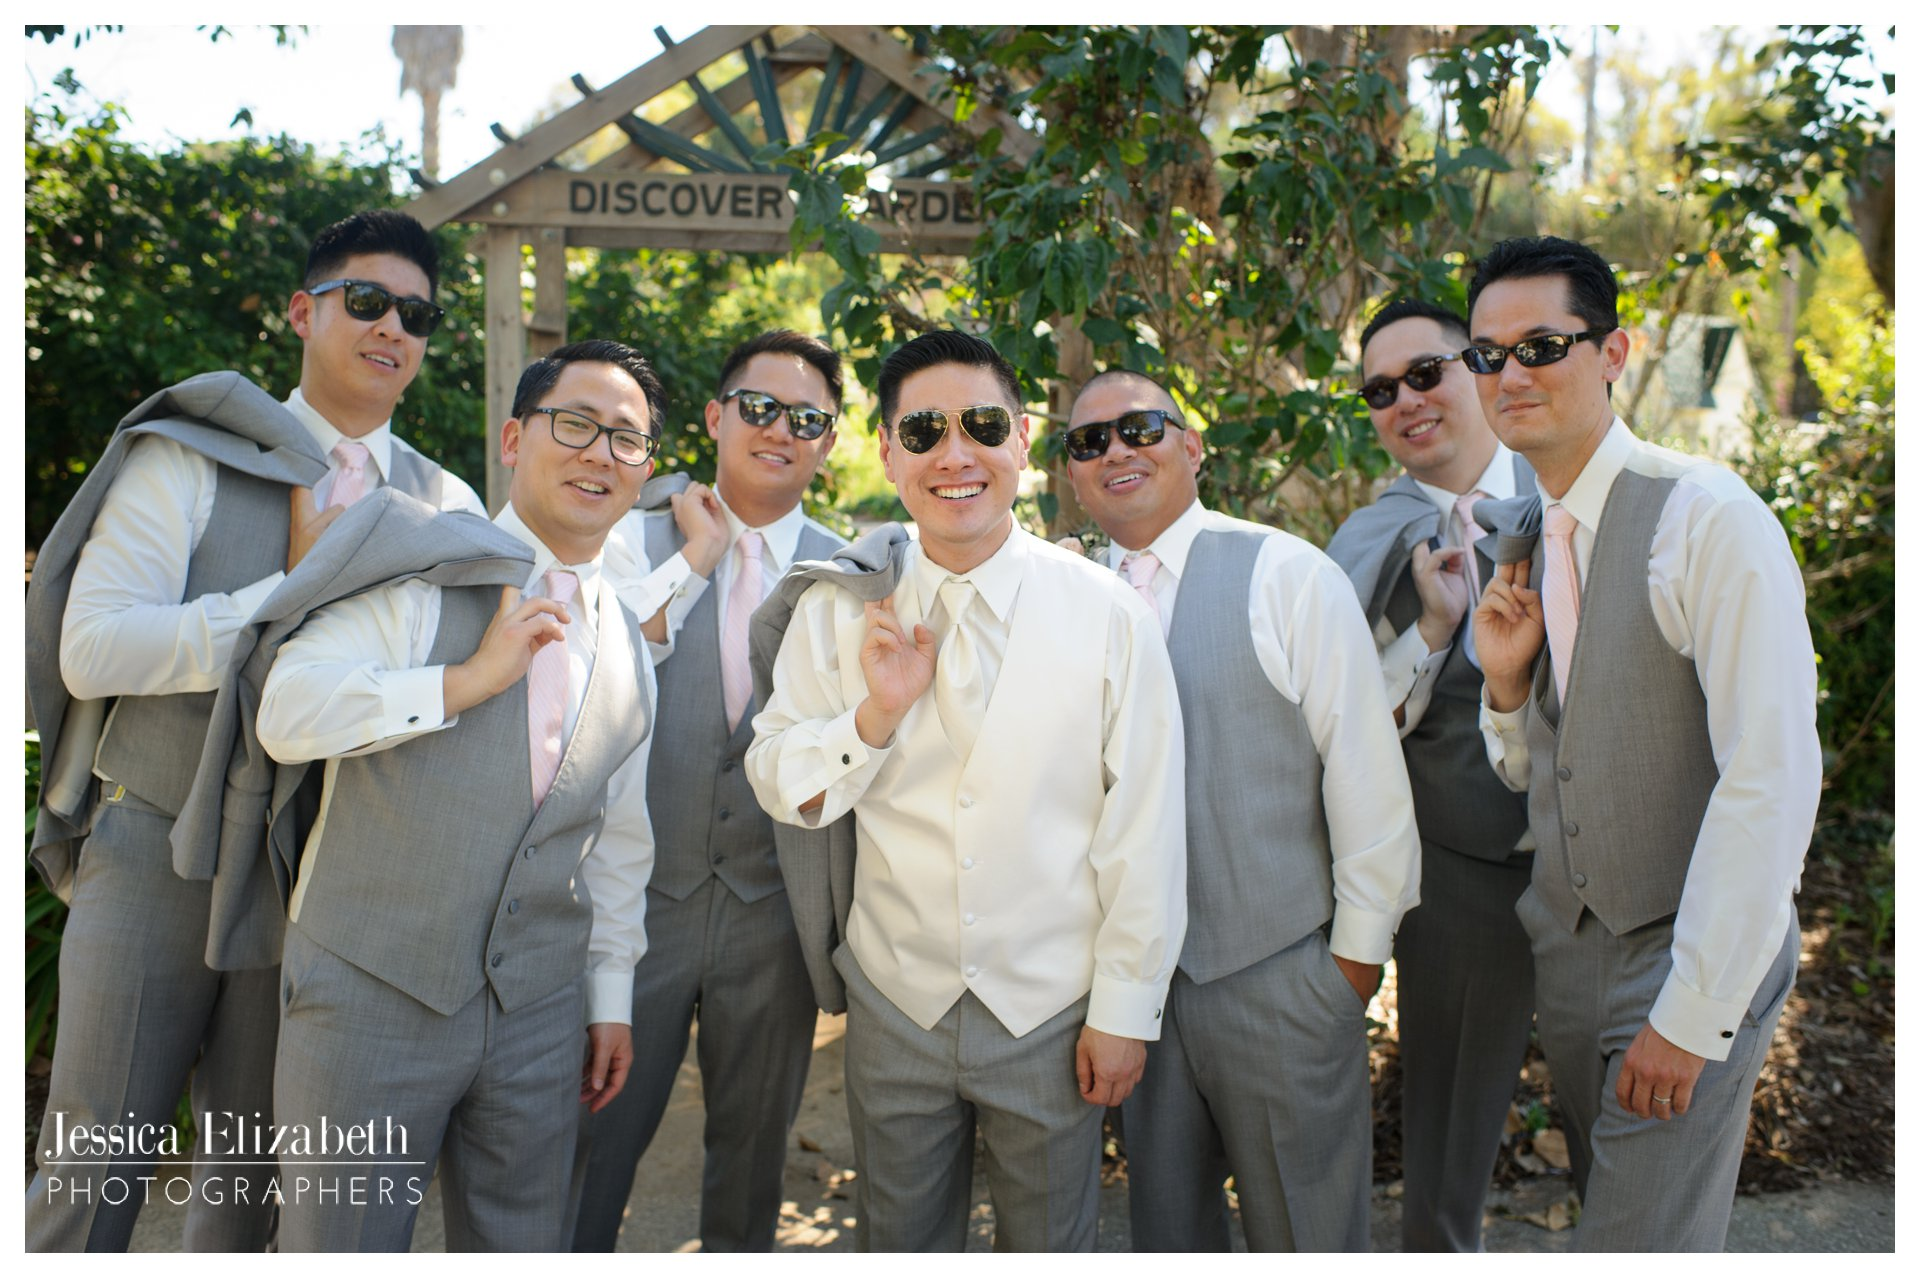 04-South-Coast-Botanic-Garden-Palos-Verdes-Wedding-Photography-by-Jessica-Elizabeth.jpg